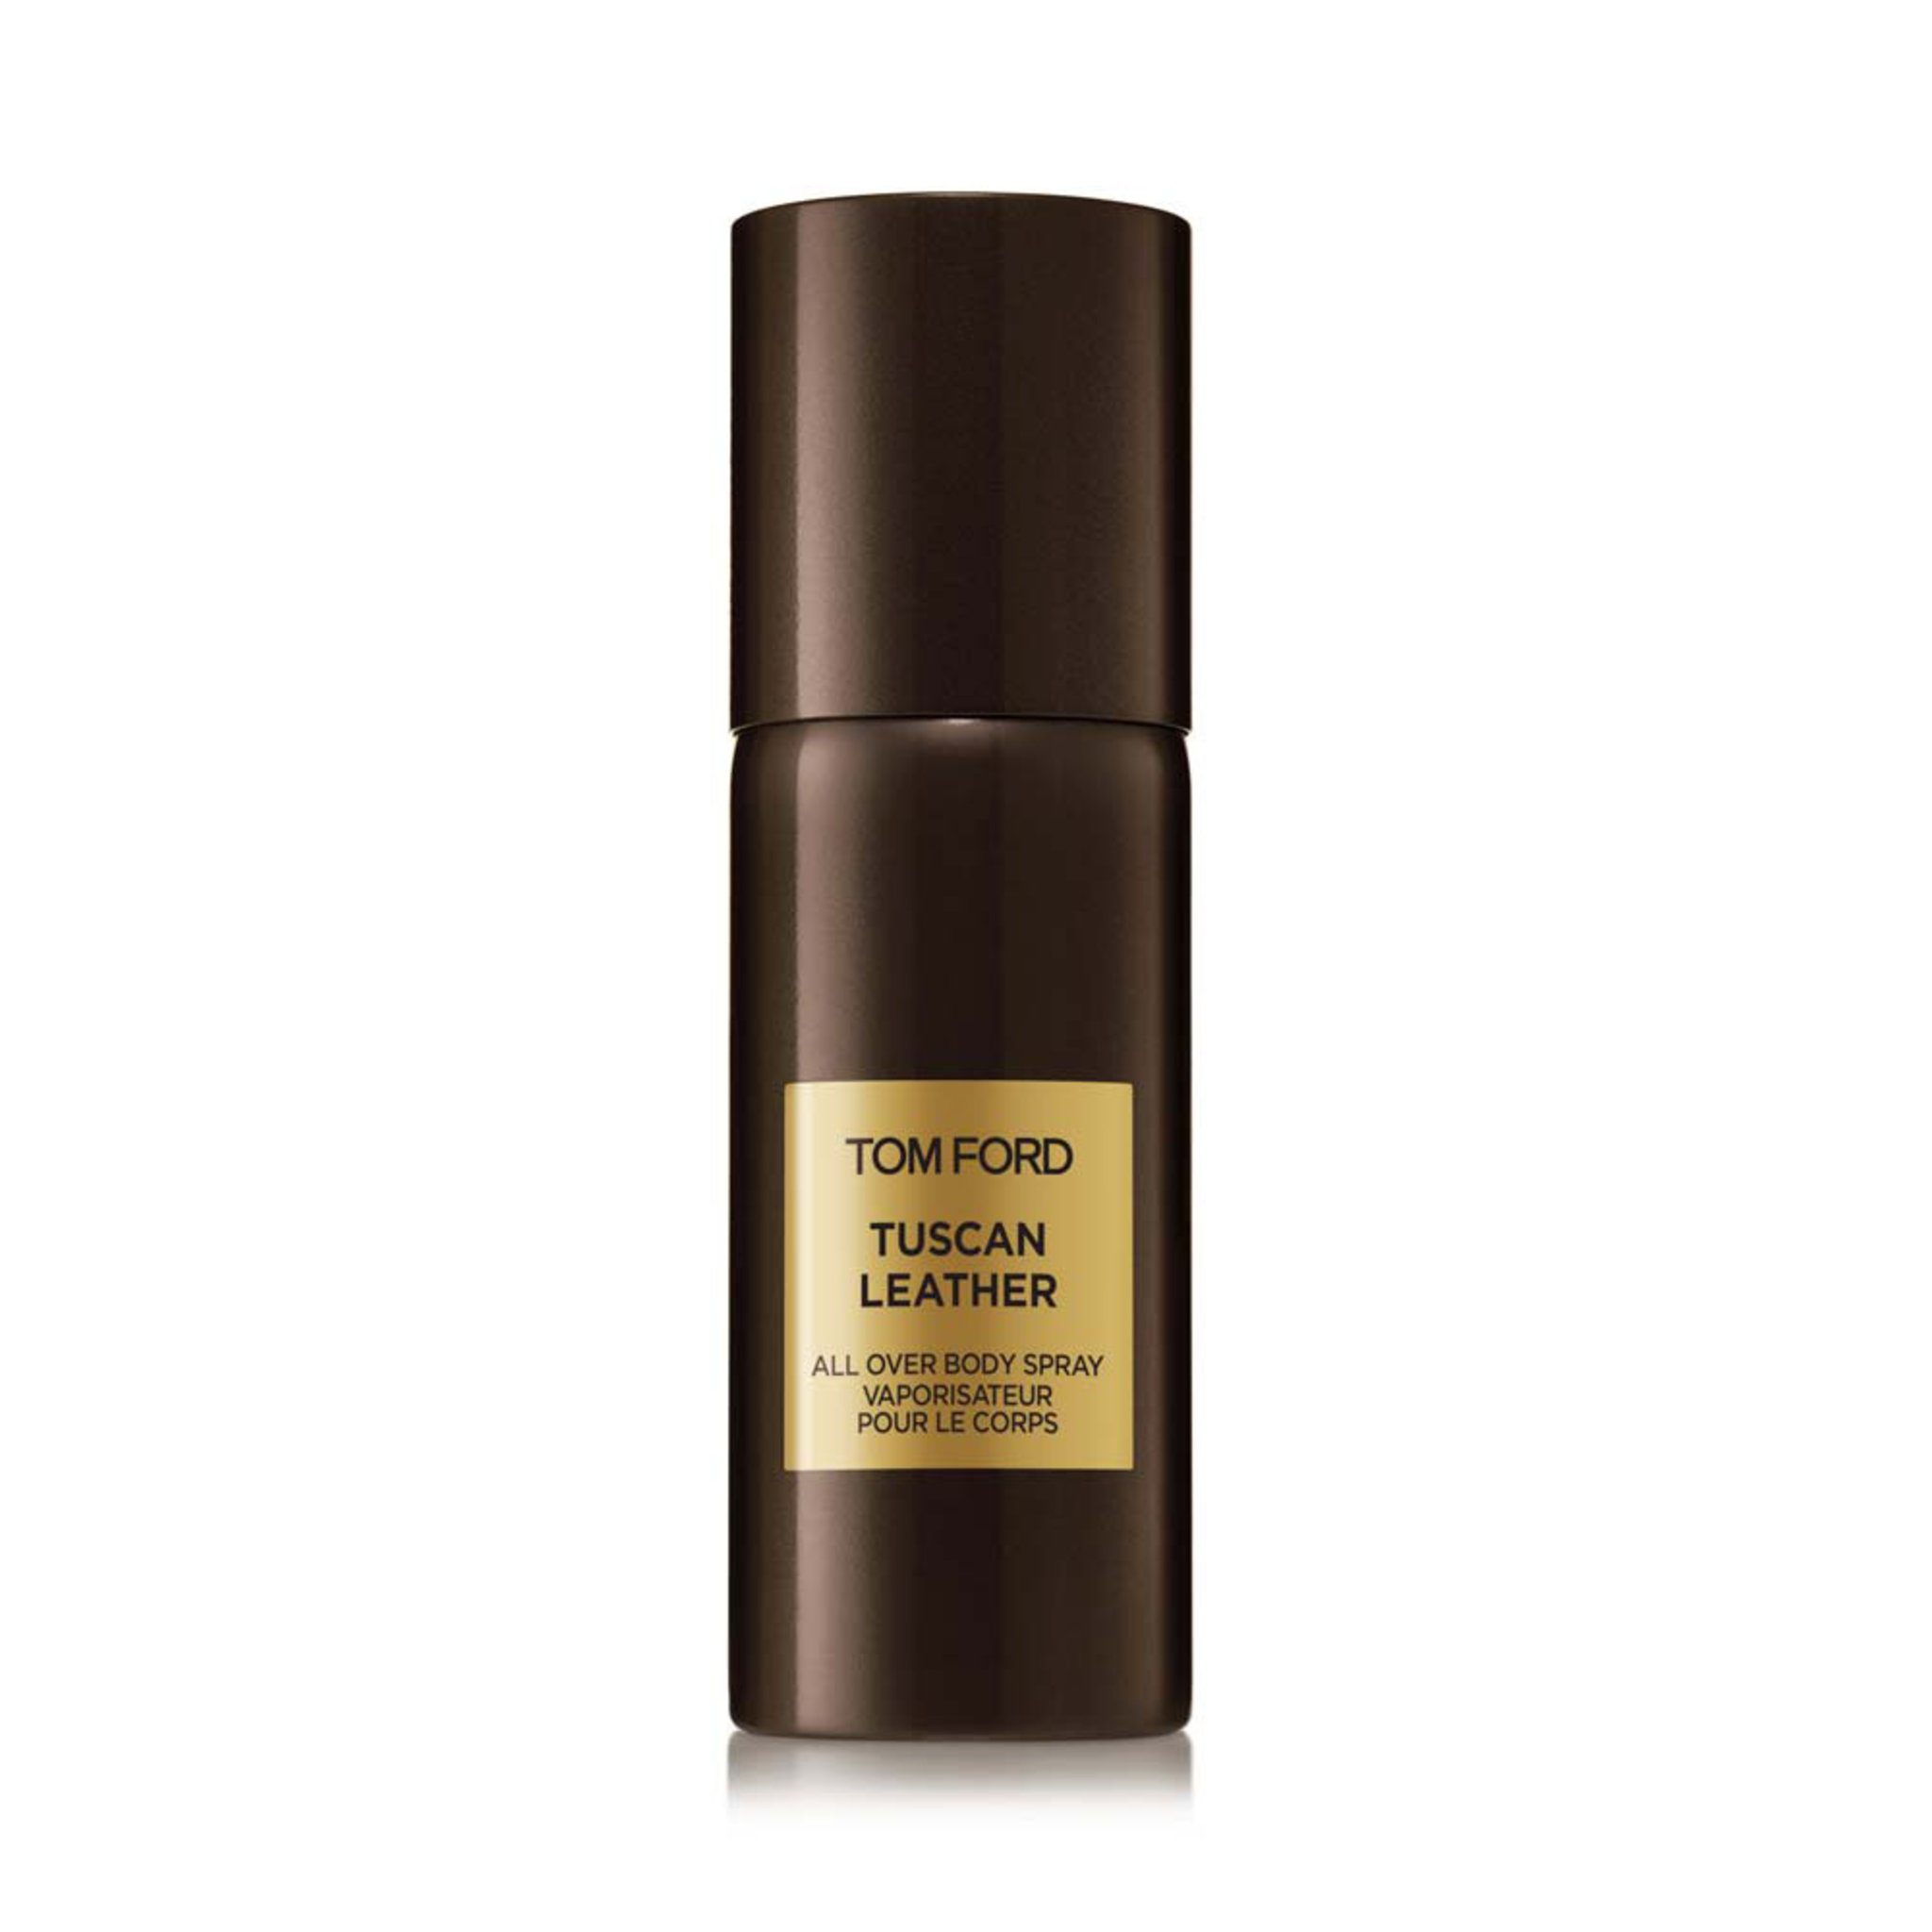 Tuscan Leather All Over Body Spray, 150 ML